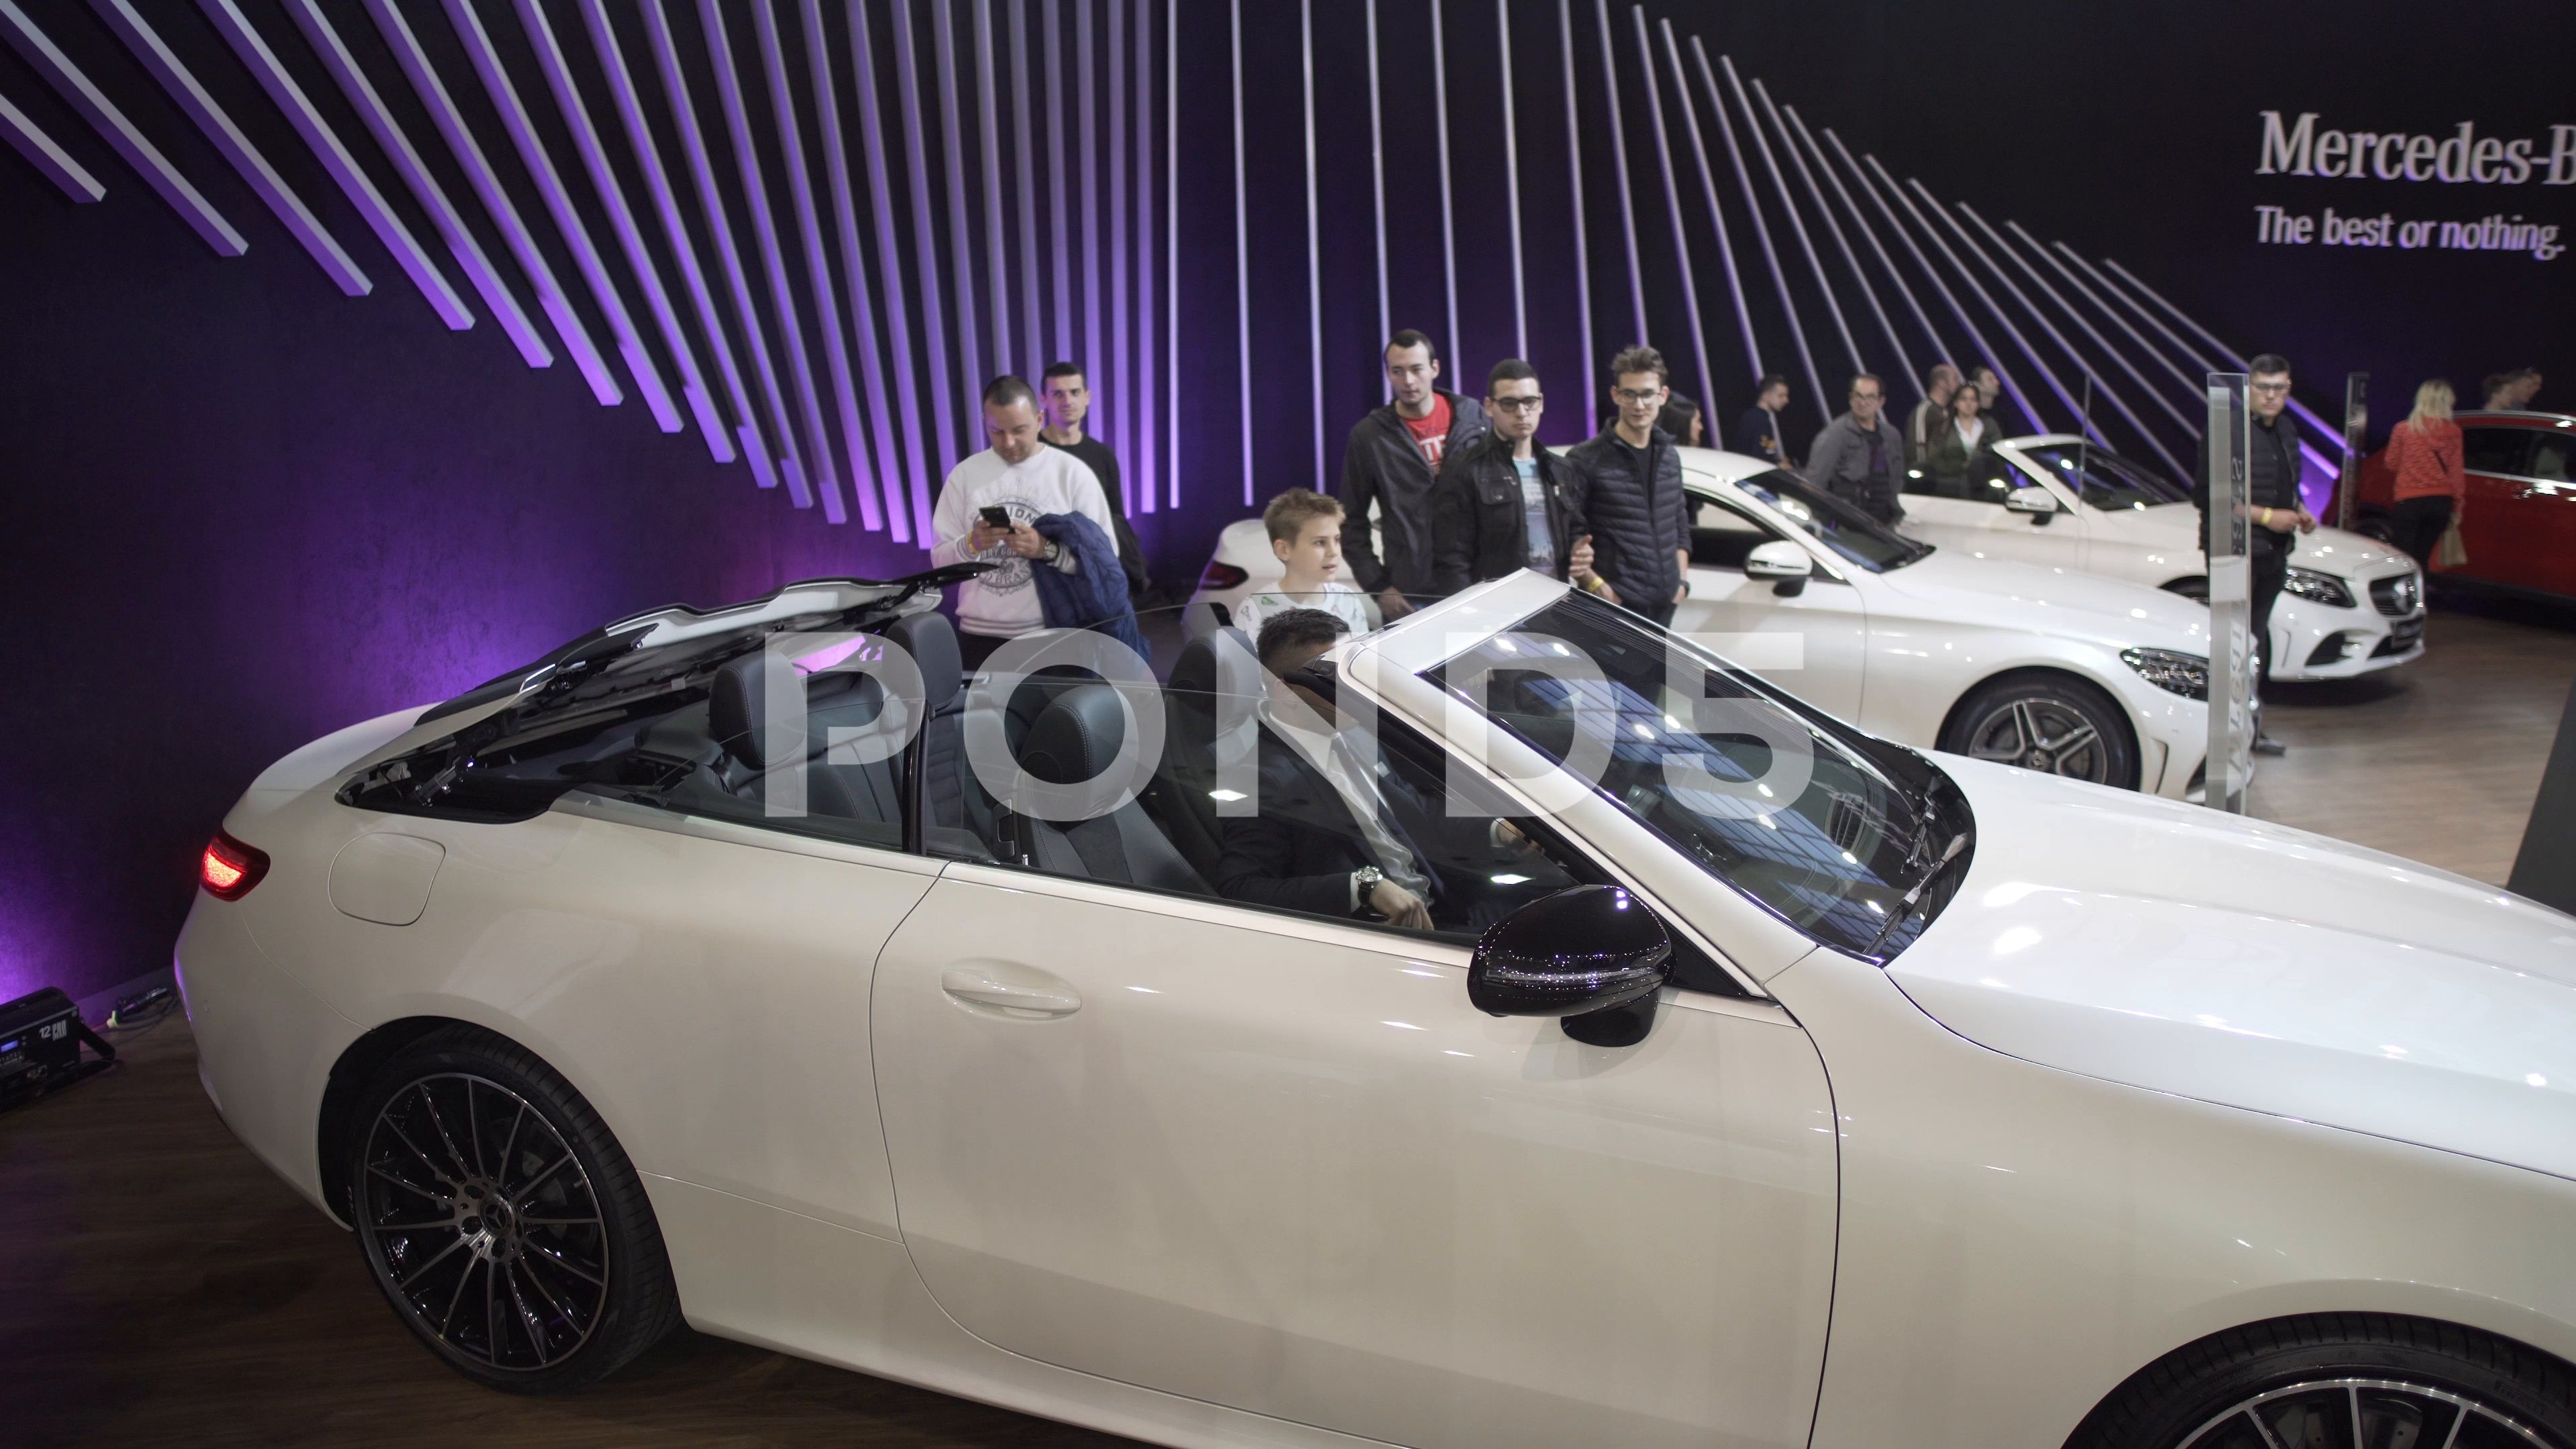 Car Show Serbia Belgrade 2019 Opening The Roof Of The Convertible Car Stock Footage By Droneye Car Show Car Belgrade